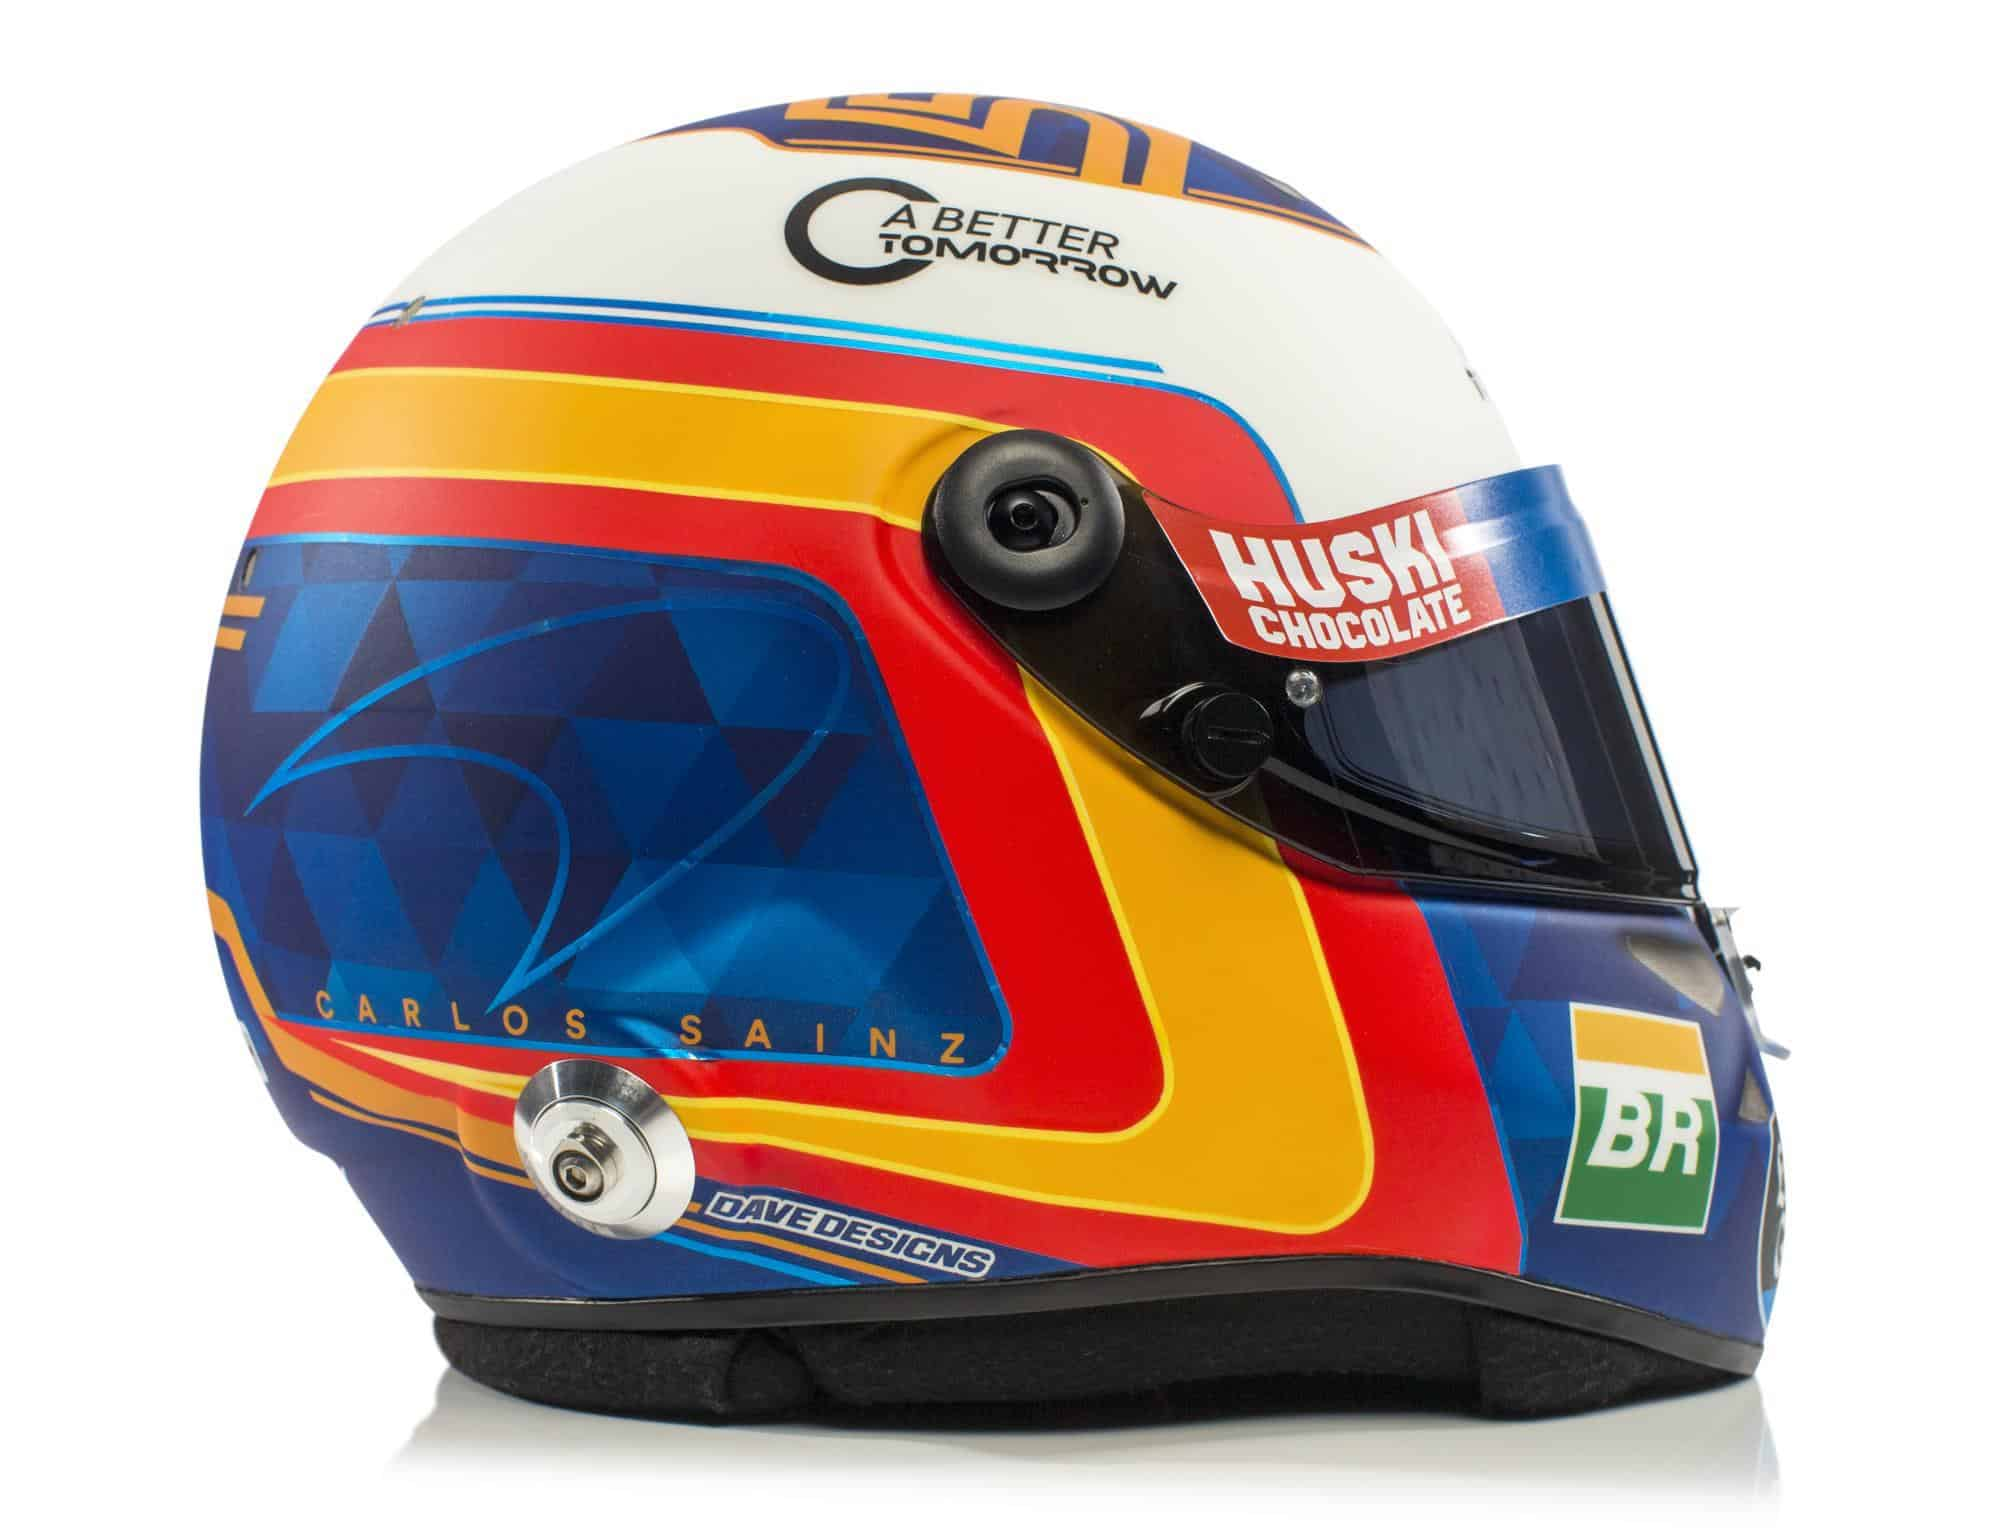 2019 F1 Carlos Sainz helmet McLaren Renault right side Photo McLaren Edited by MAXF1net